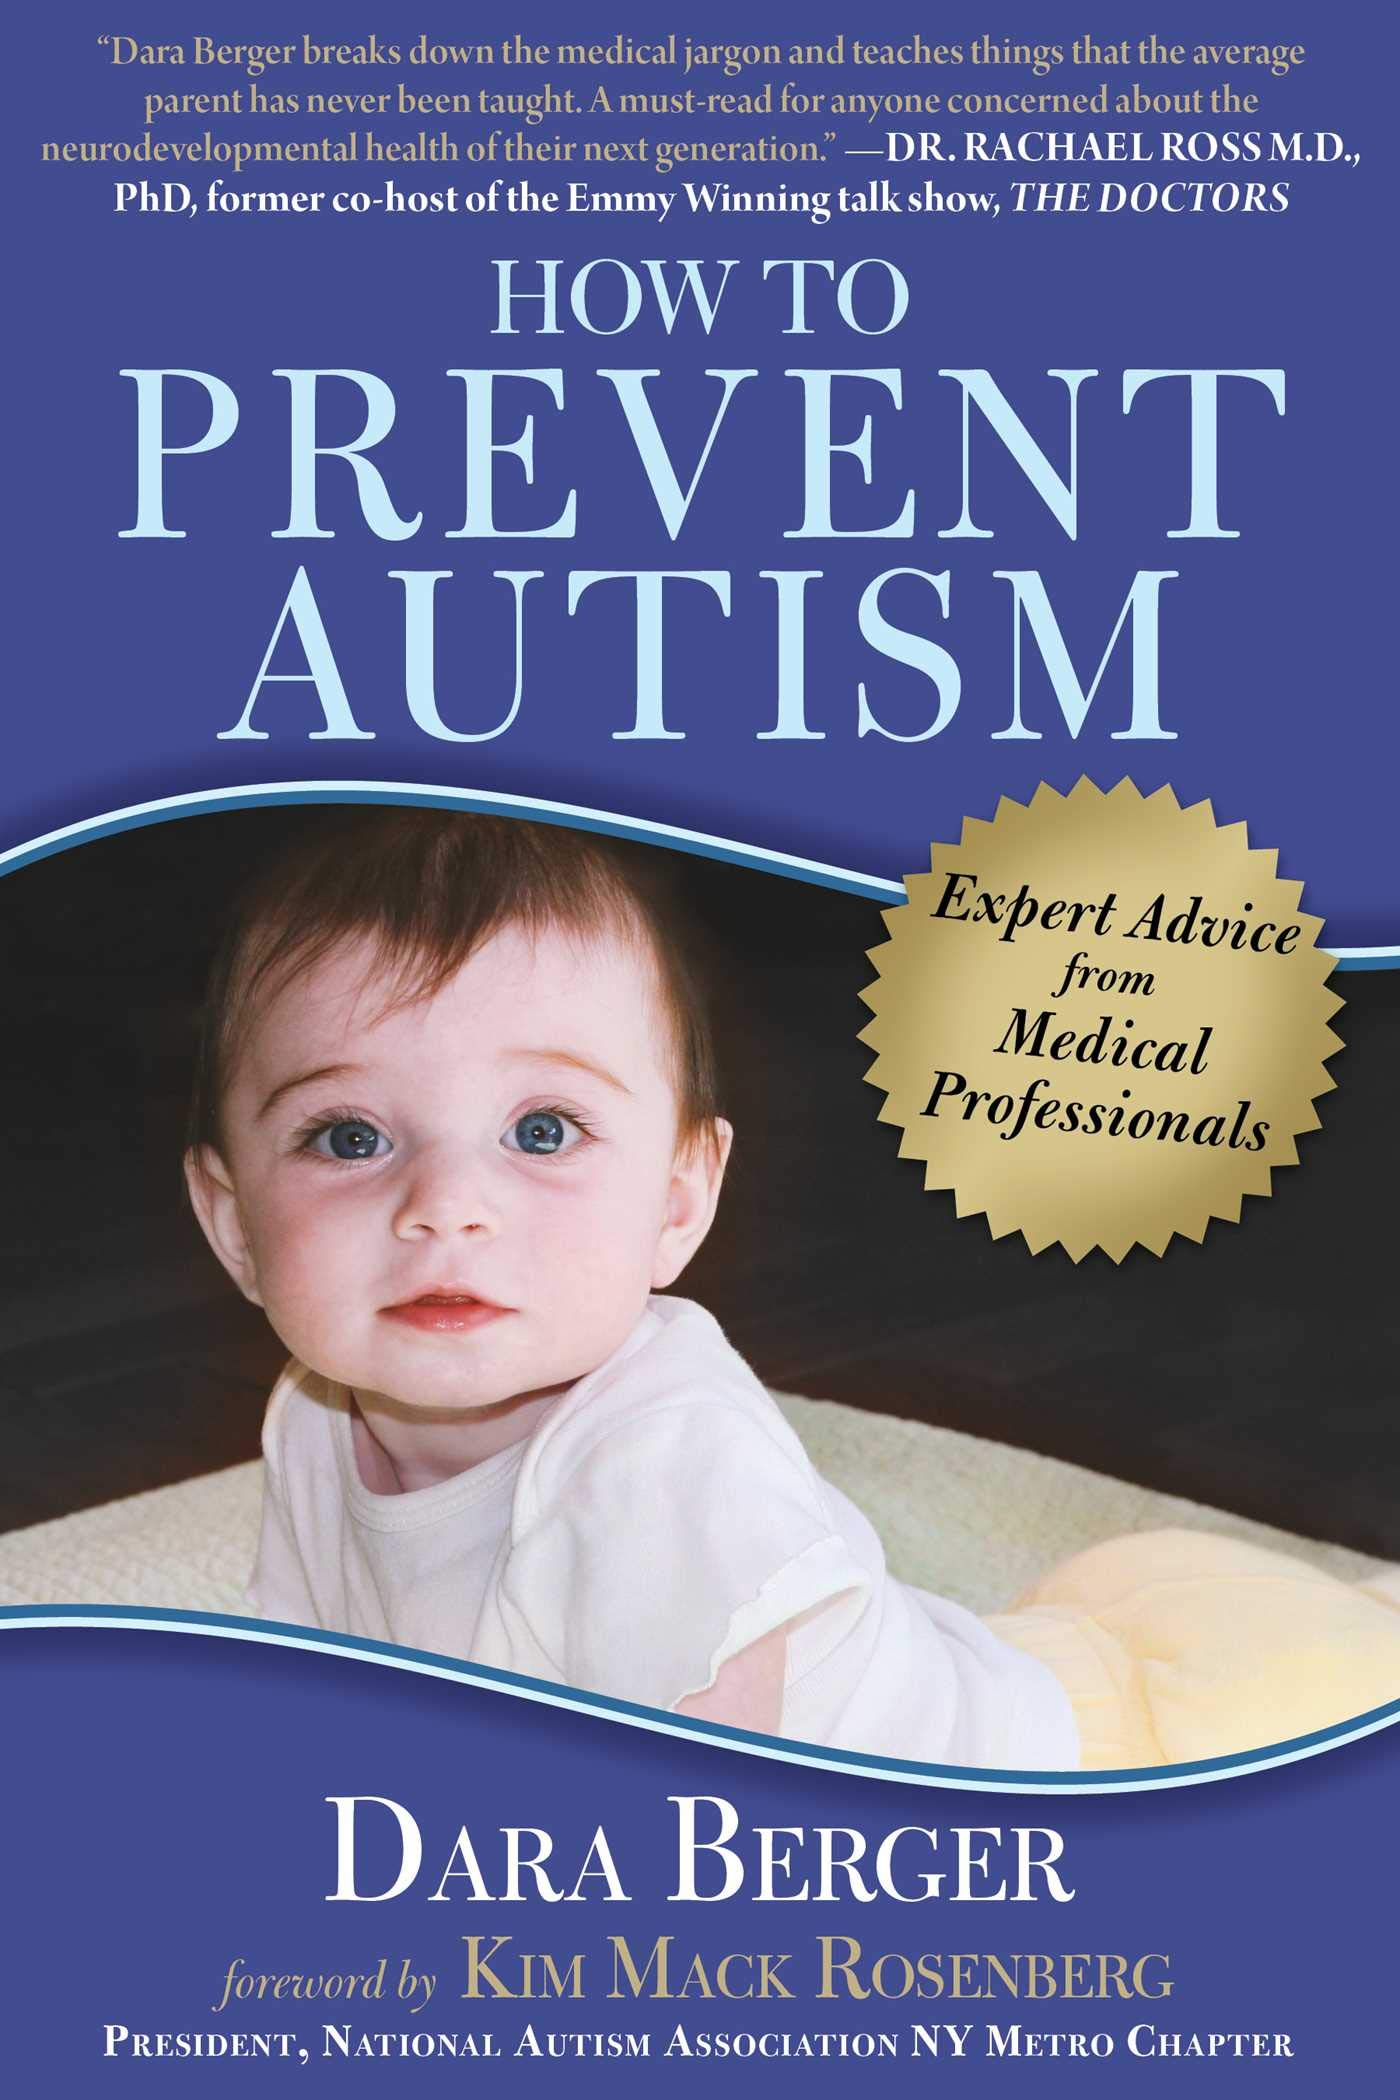 Fix Charity That Wants To Fix Autism >> How To Prevent Autism Expert Advice From Medical Professionals